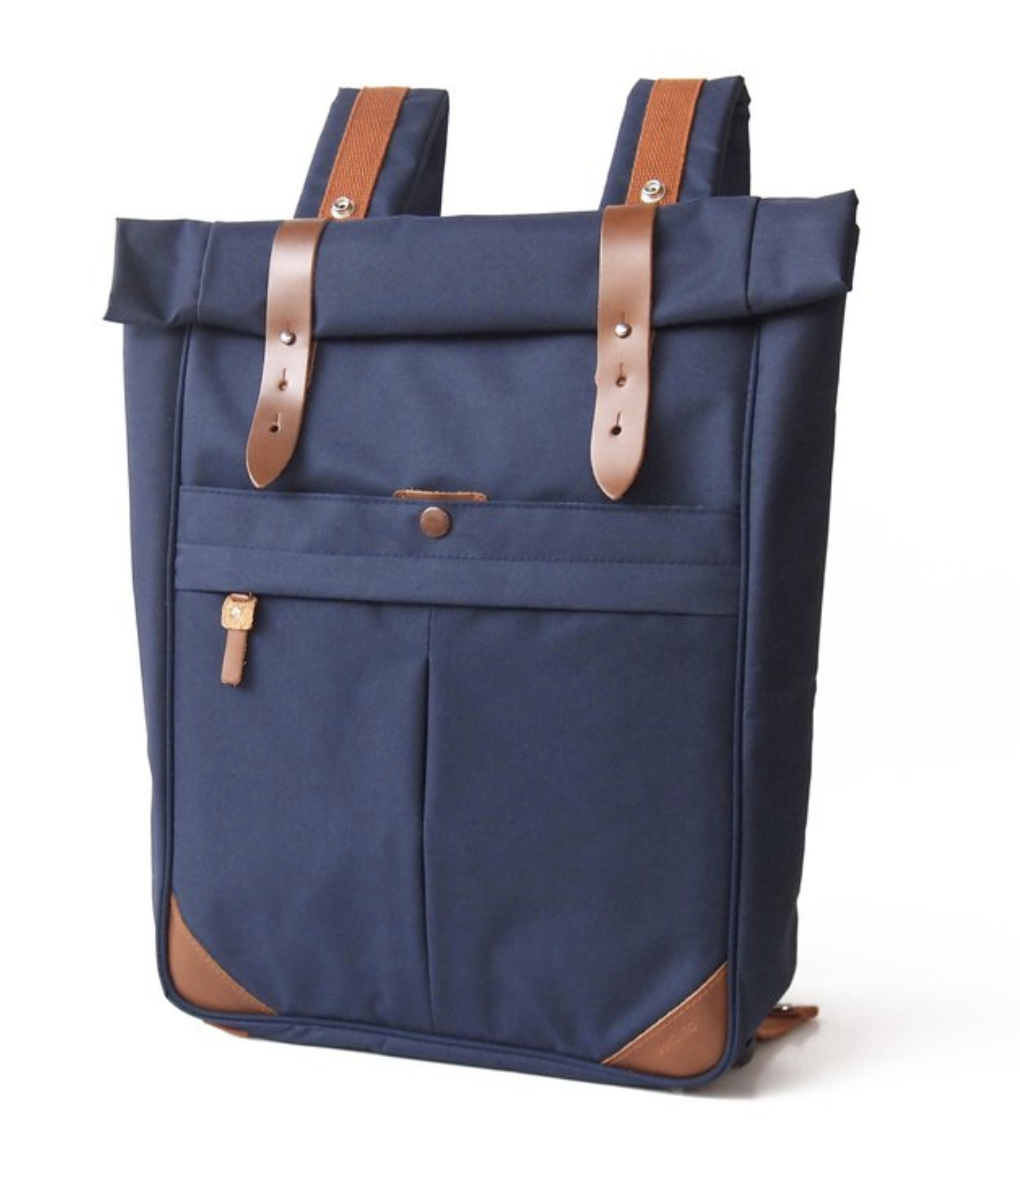 Merge Backpack and Laptop Bag